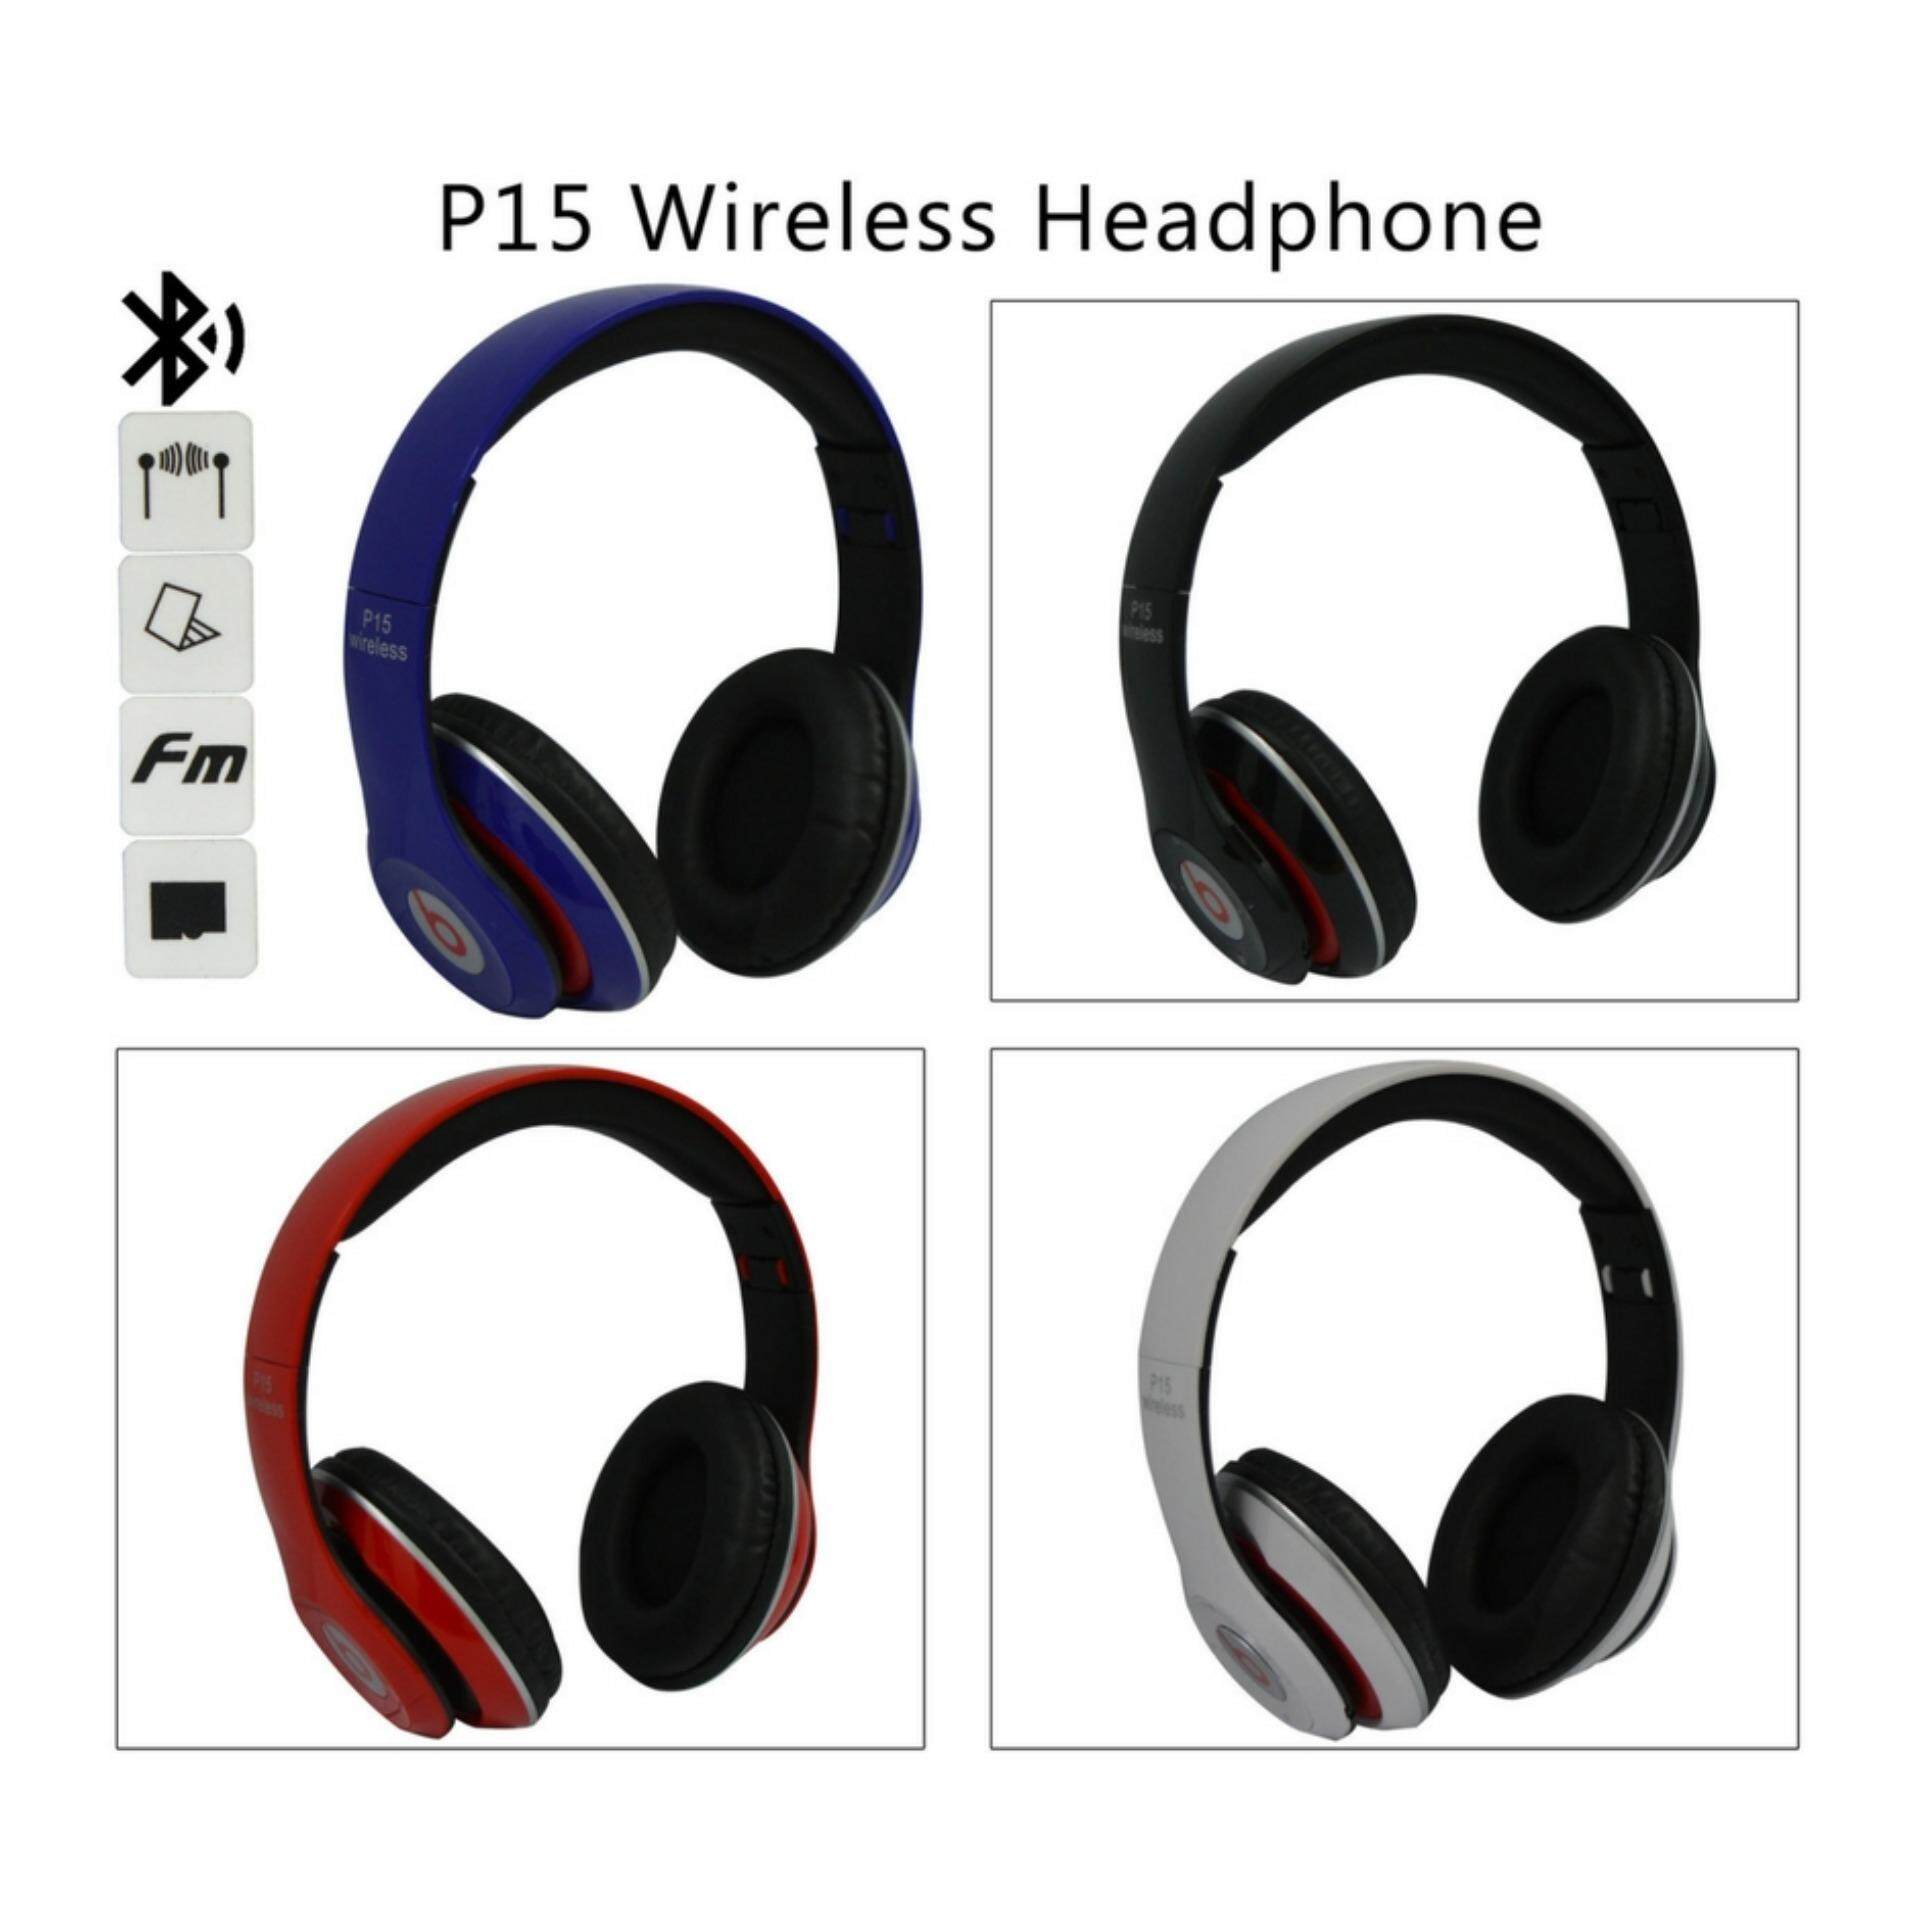 P15 wireless headphone HD sound Boost,Best seller, cheapest price guaranteed